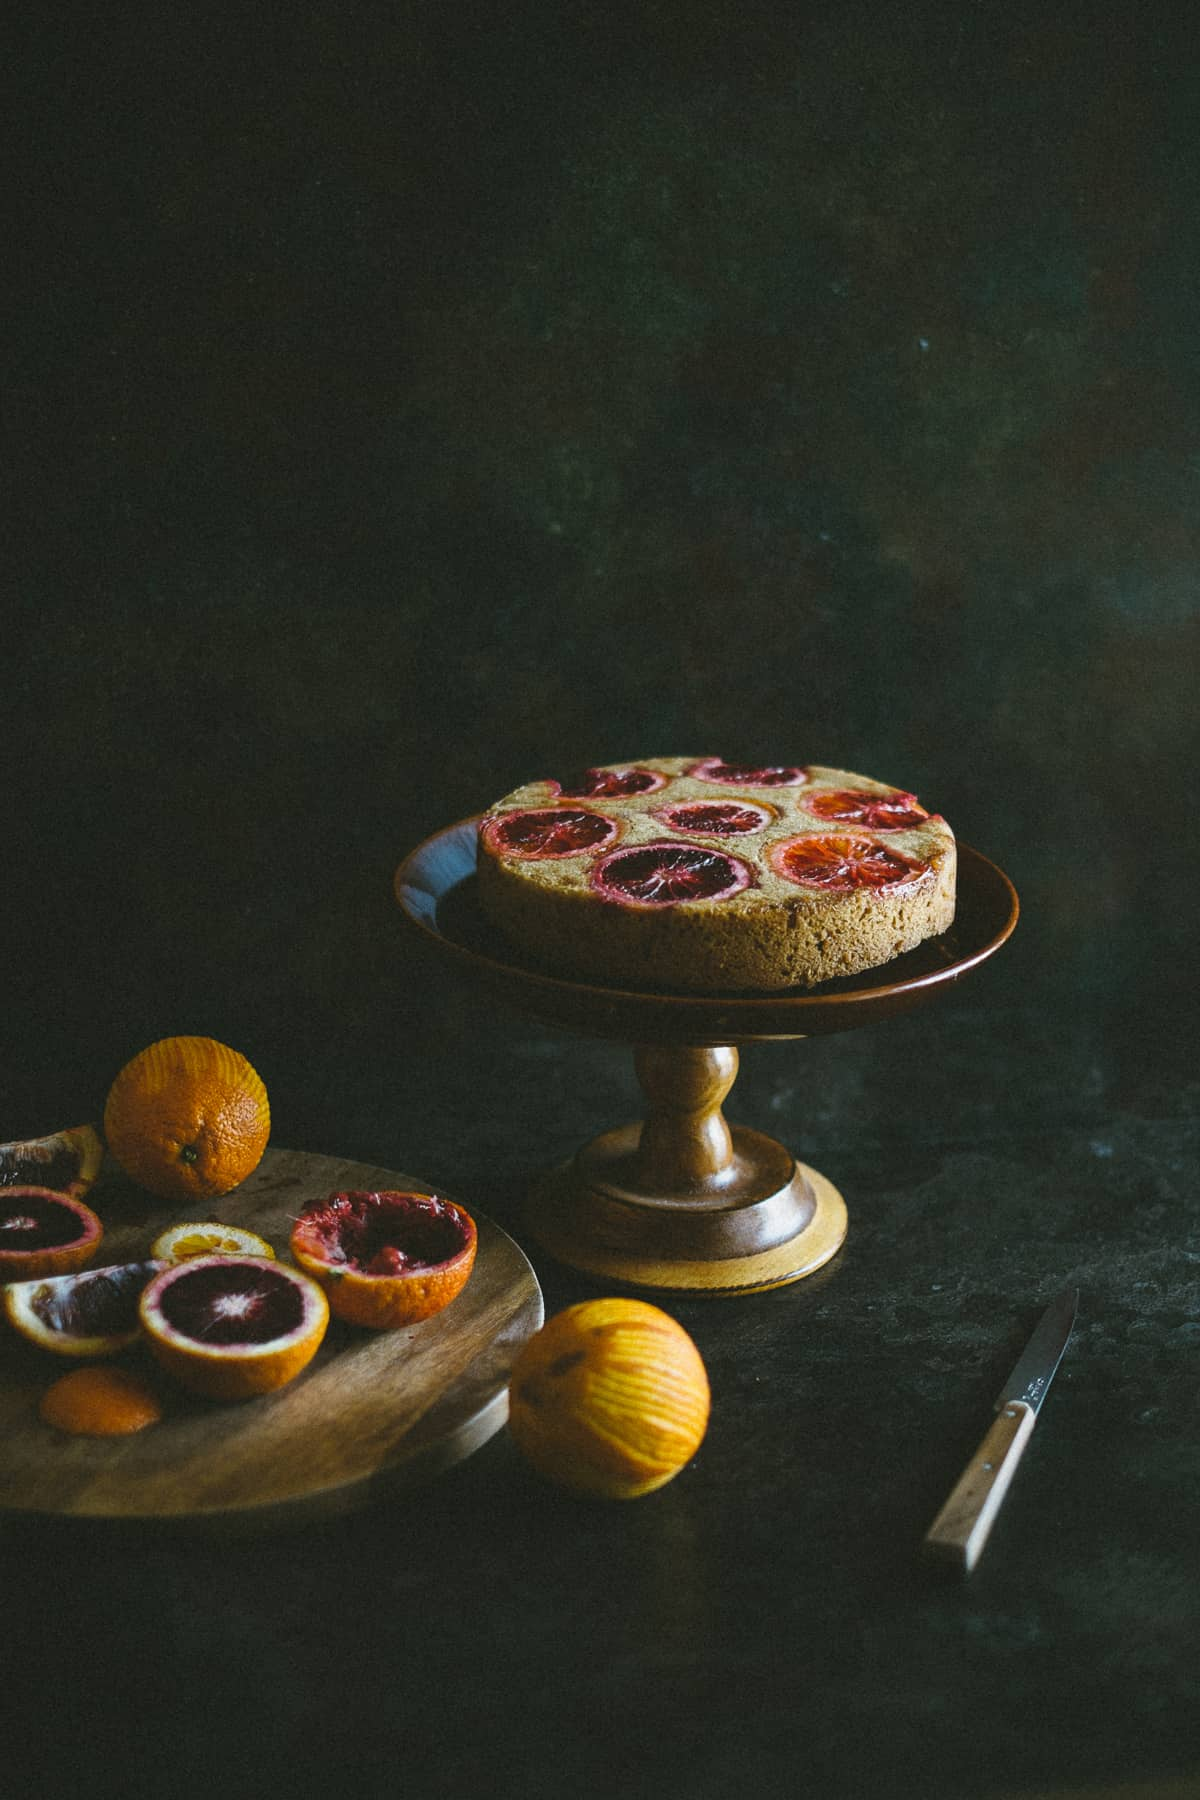 A cake made with blood oranges on a cake stand